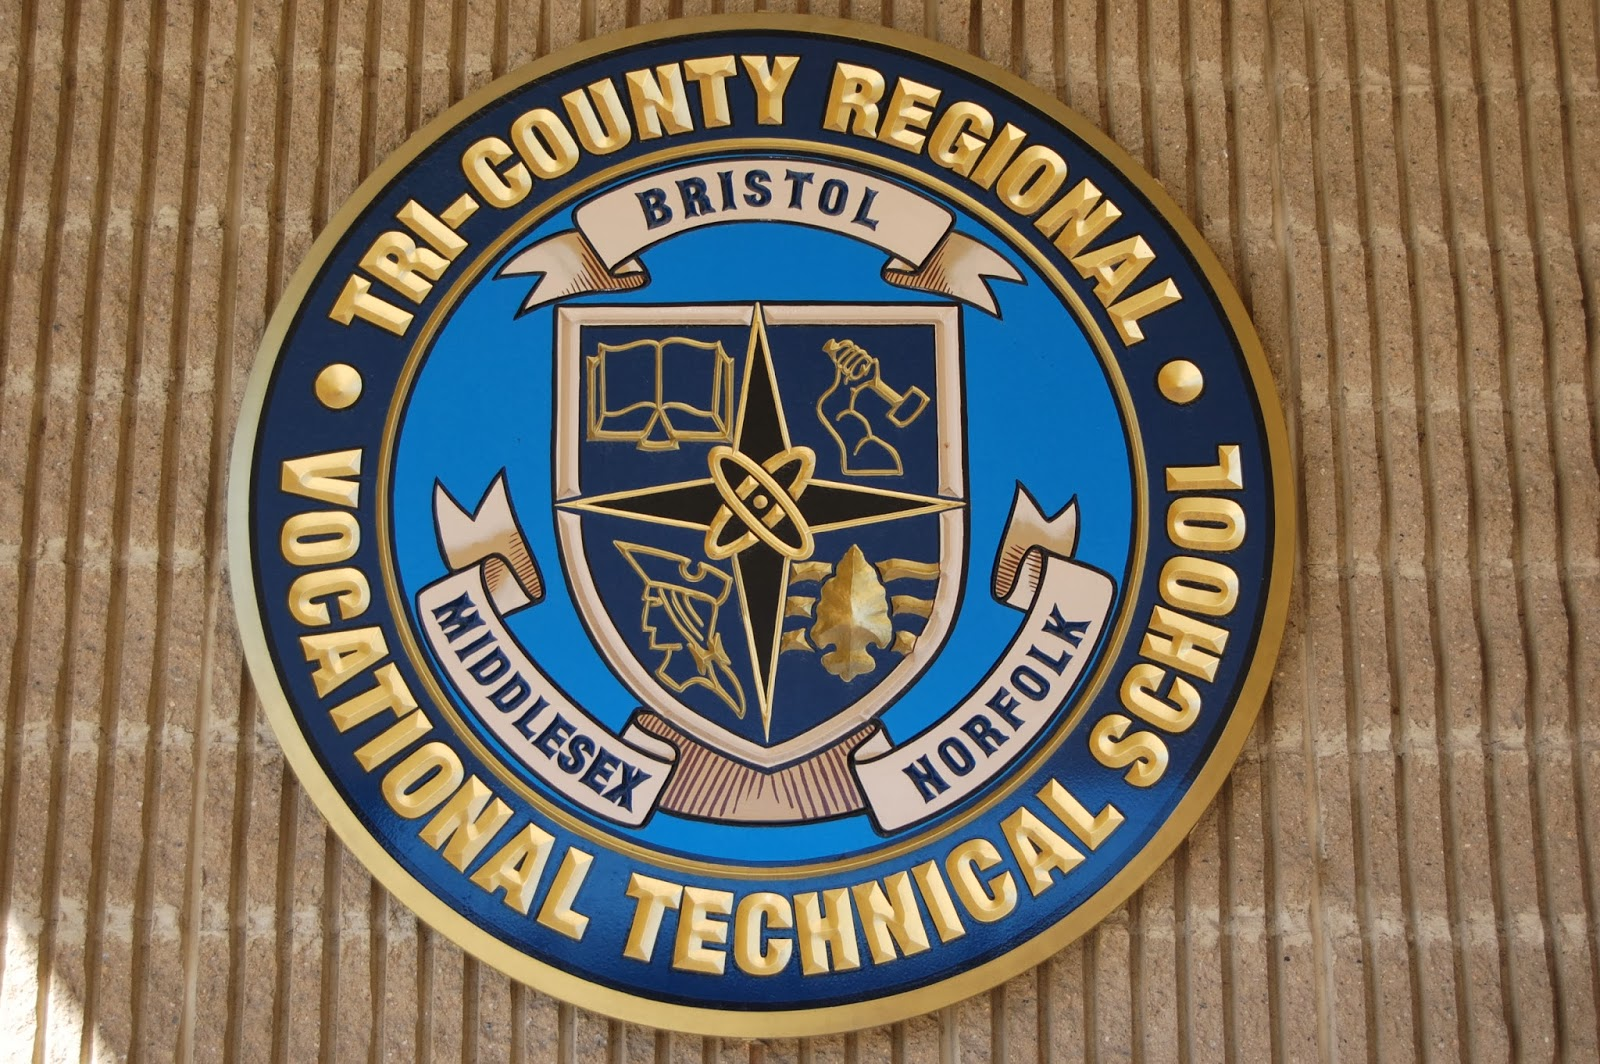 Tri-County Voc Tech in Franklin